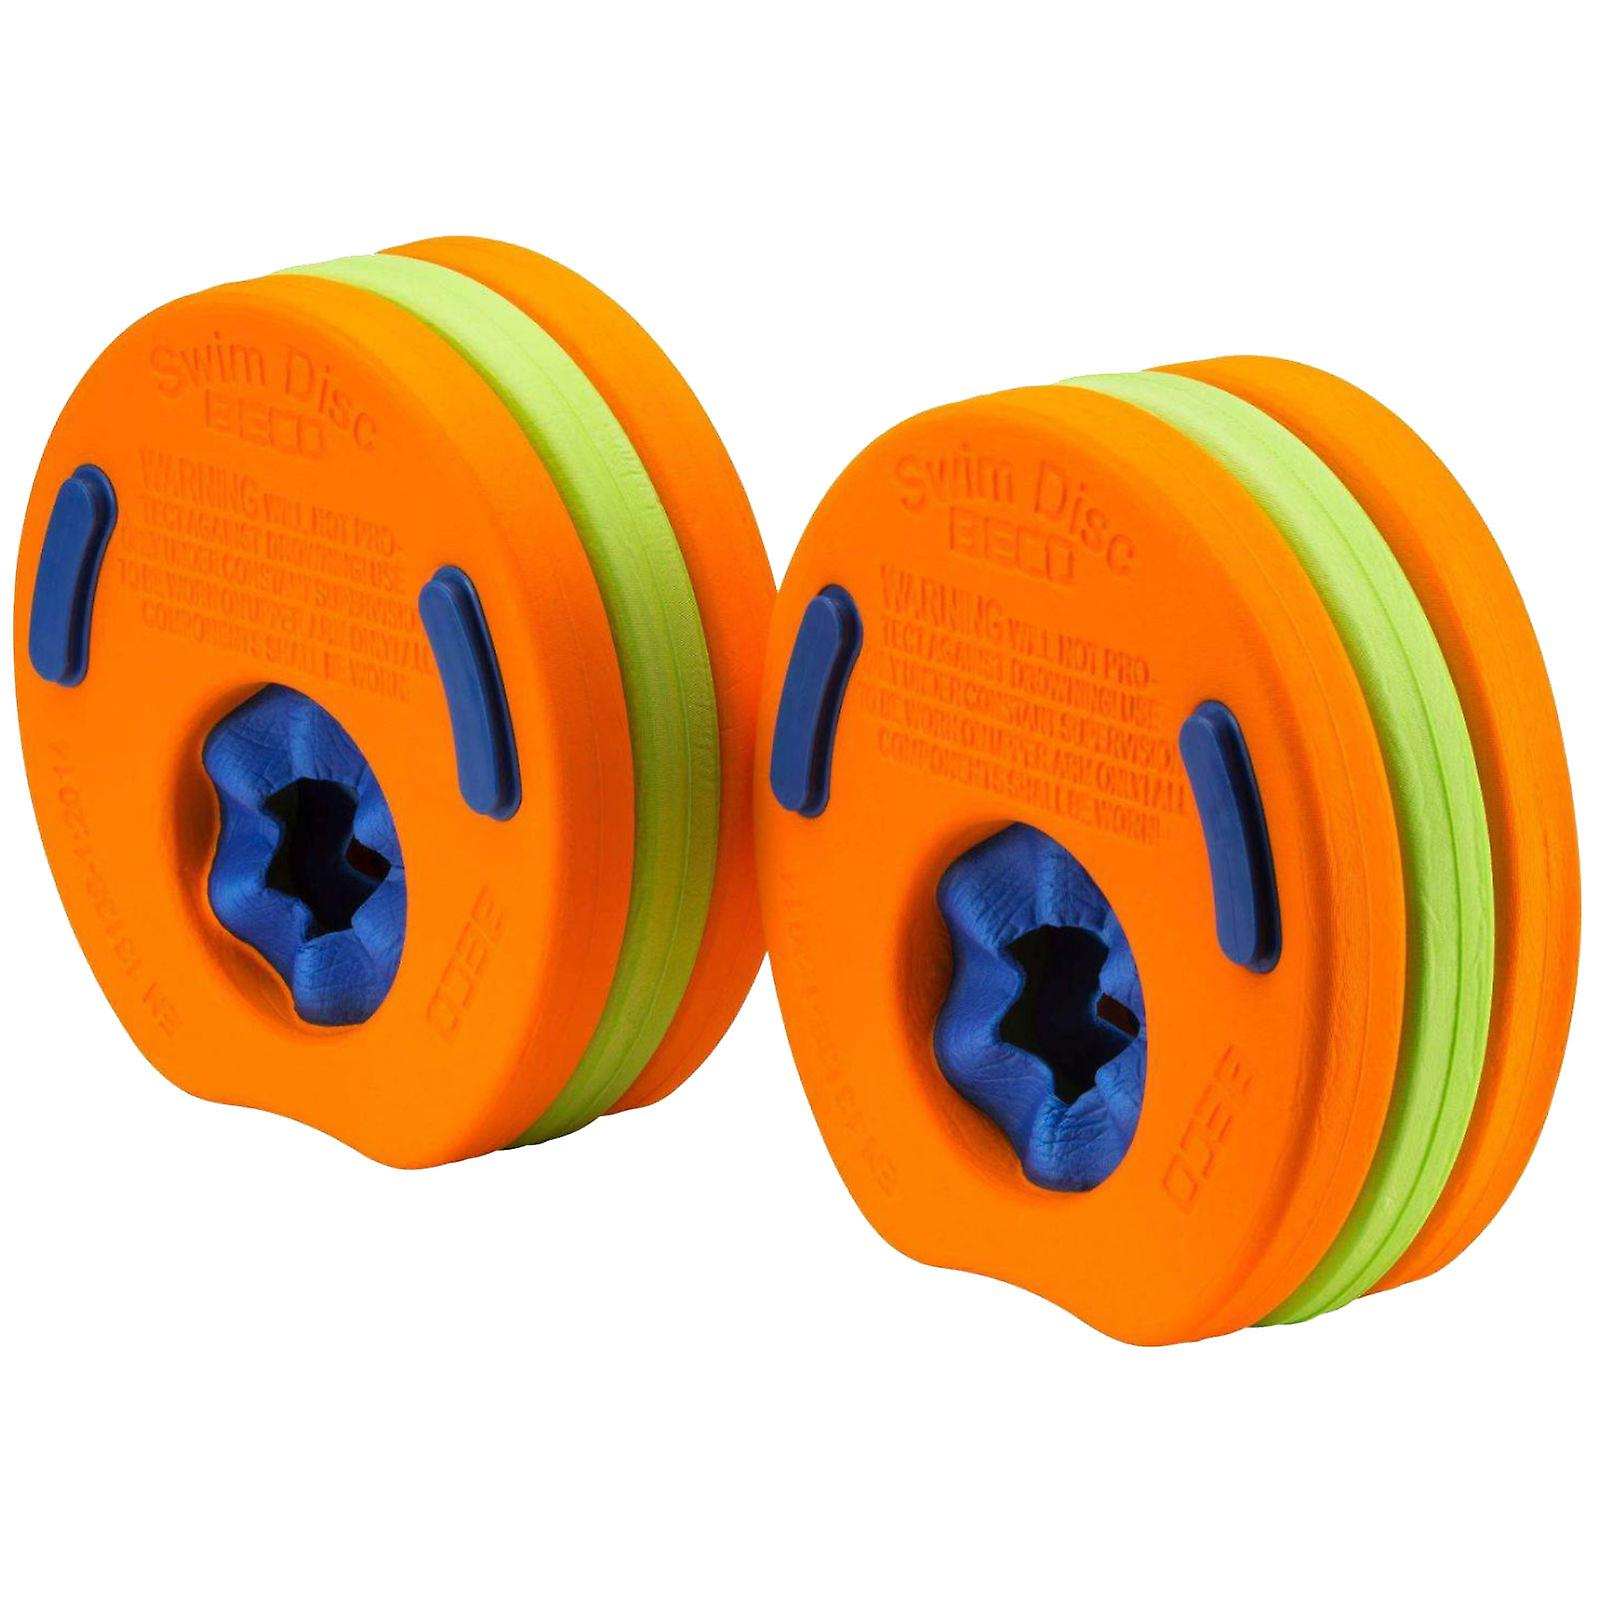 BECO Swim Discs Arm Bands for Children -Orange/Green